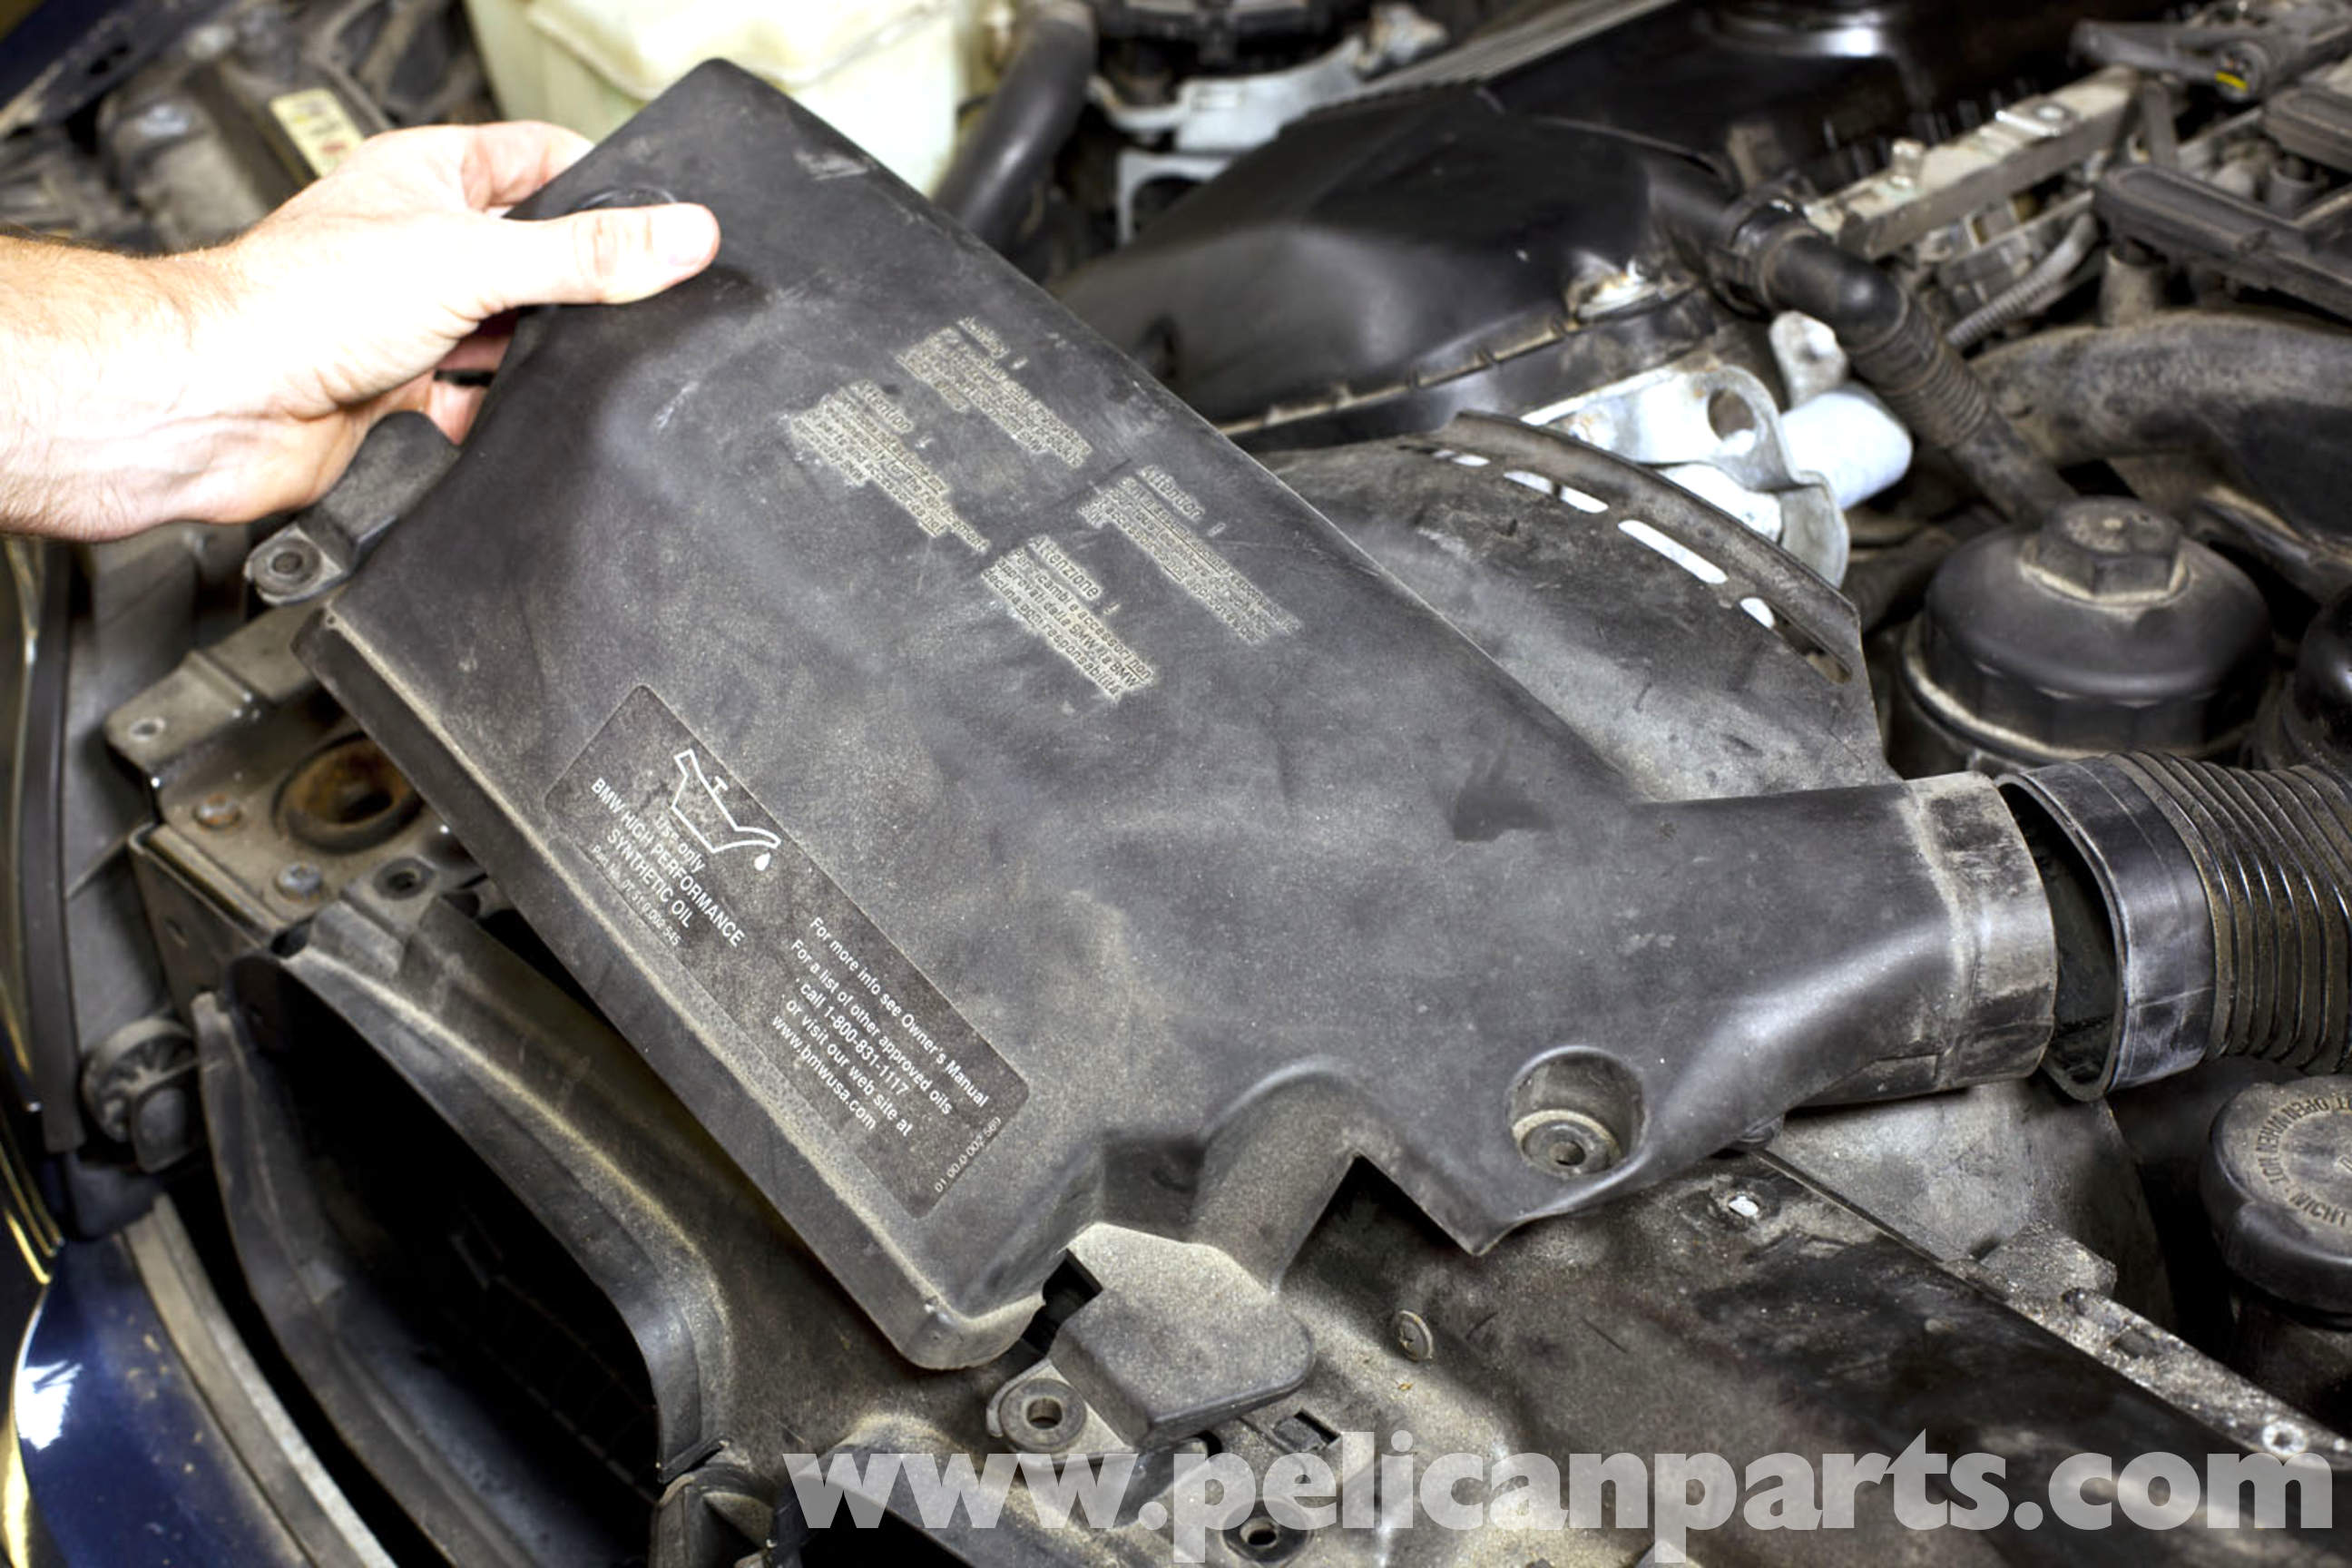 Bmw E46 Power Steering Pump Replacement 325i 2001 2005 Ford Taurus Engine Diagram Intake Large Image Extra